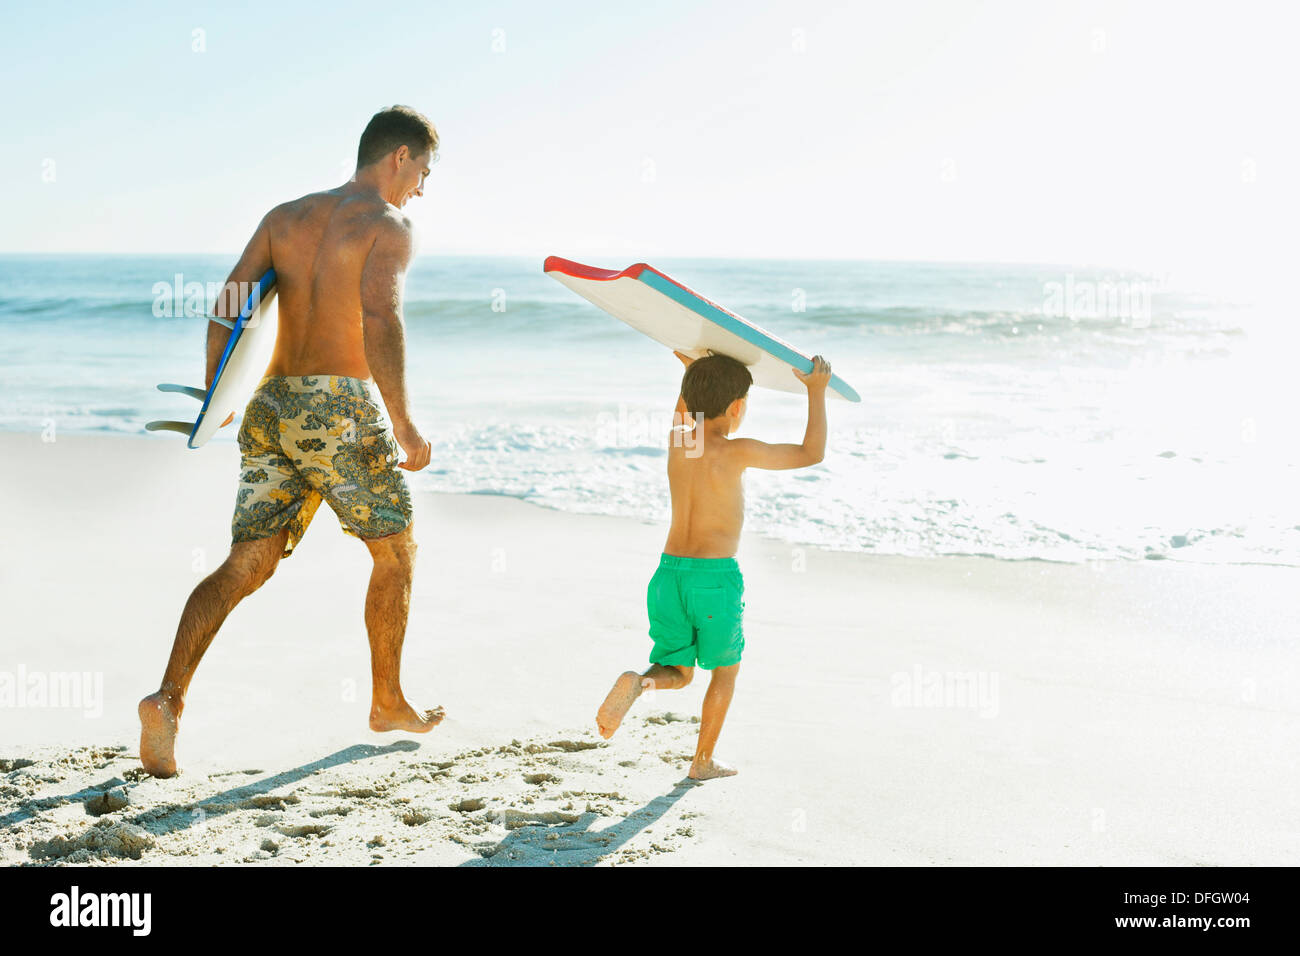 Father and son carrying surfboard and bodyboard on beach - Stock Image